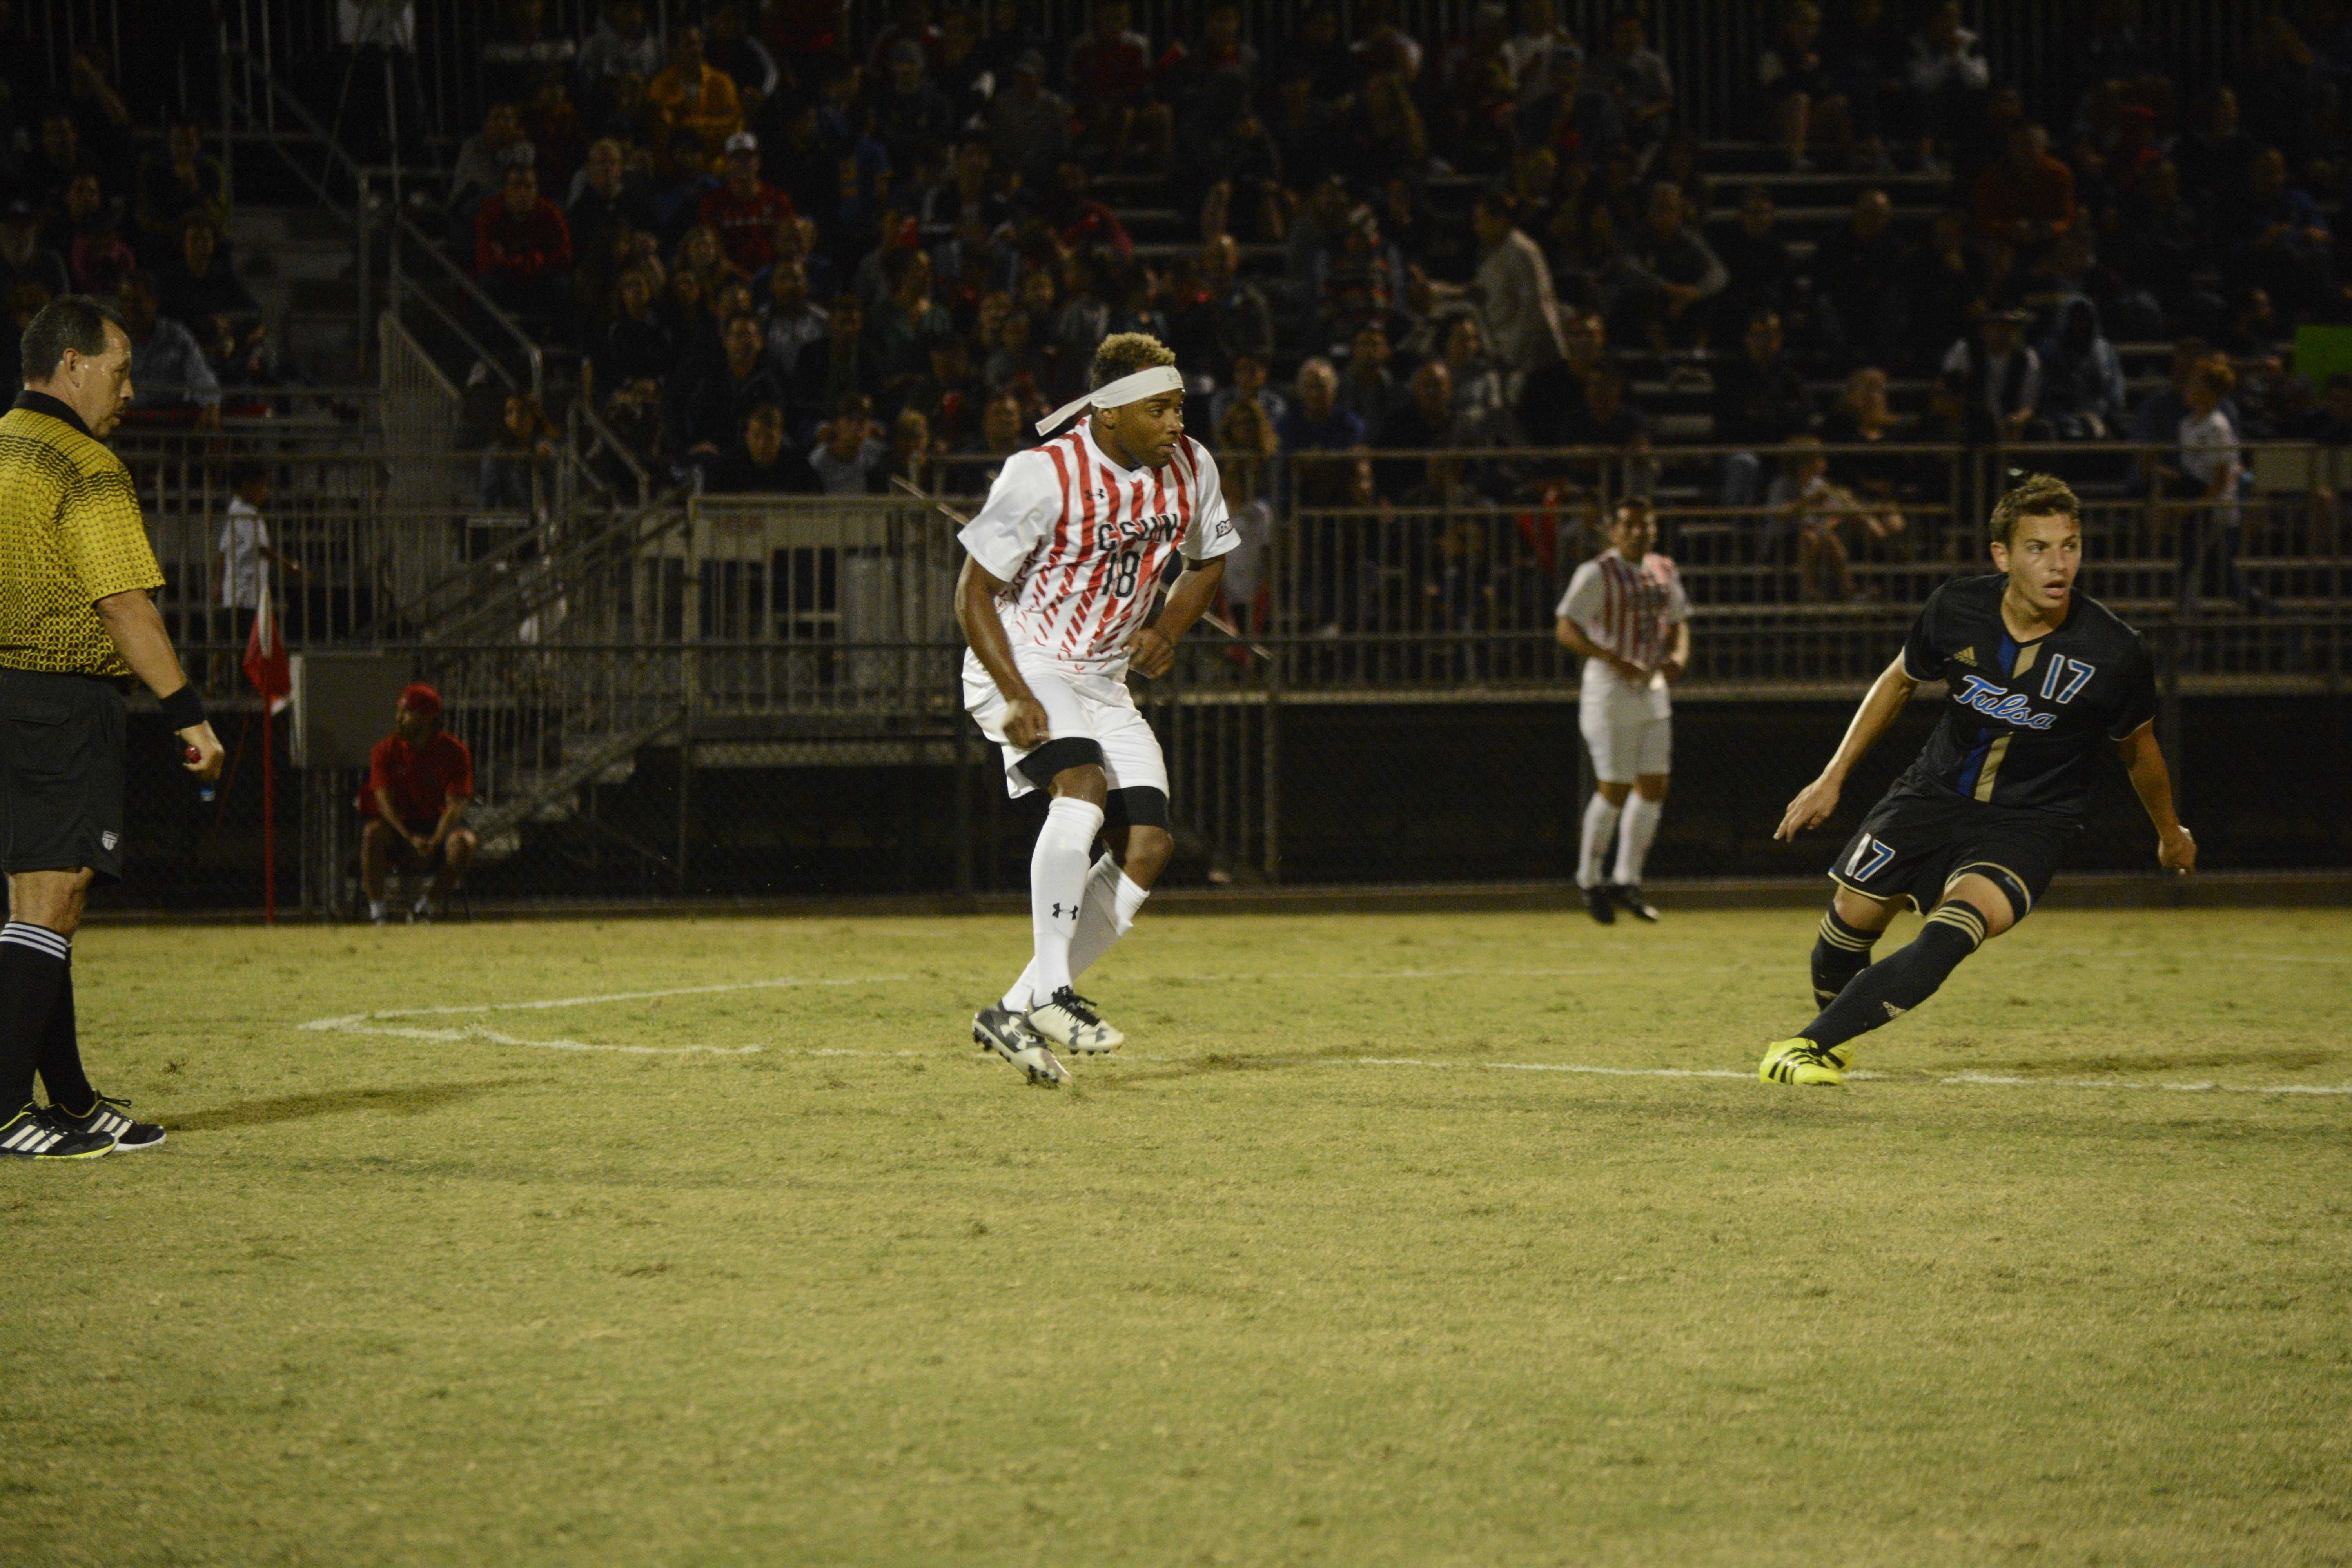 CSUN player watches midfield